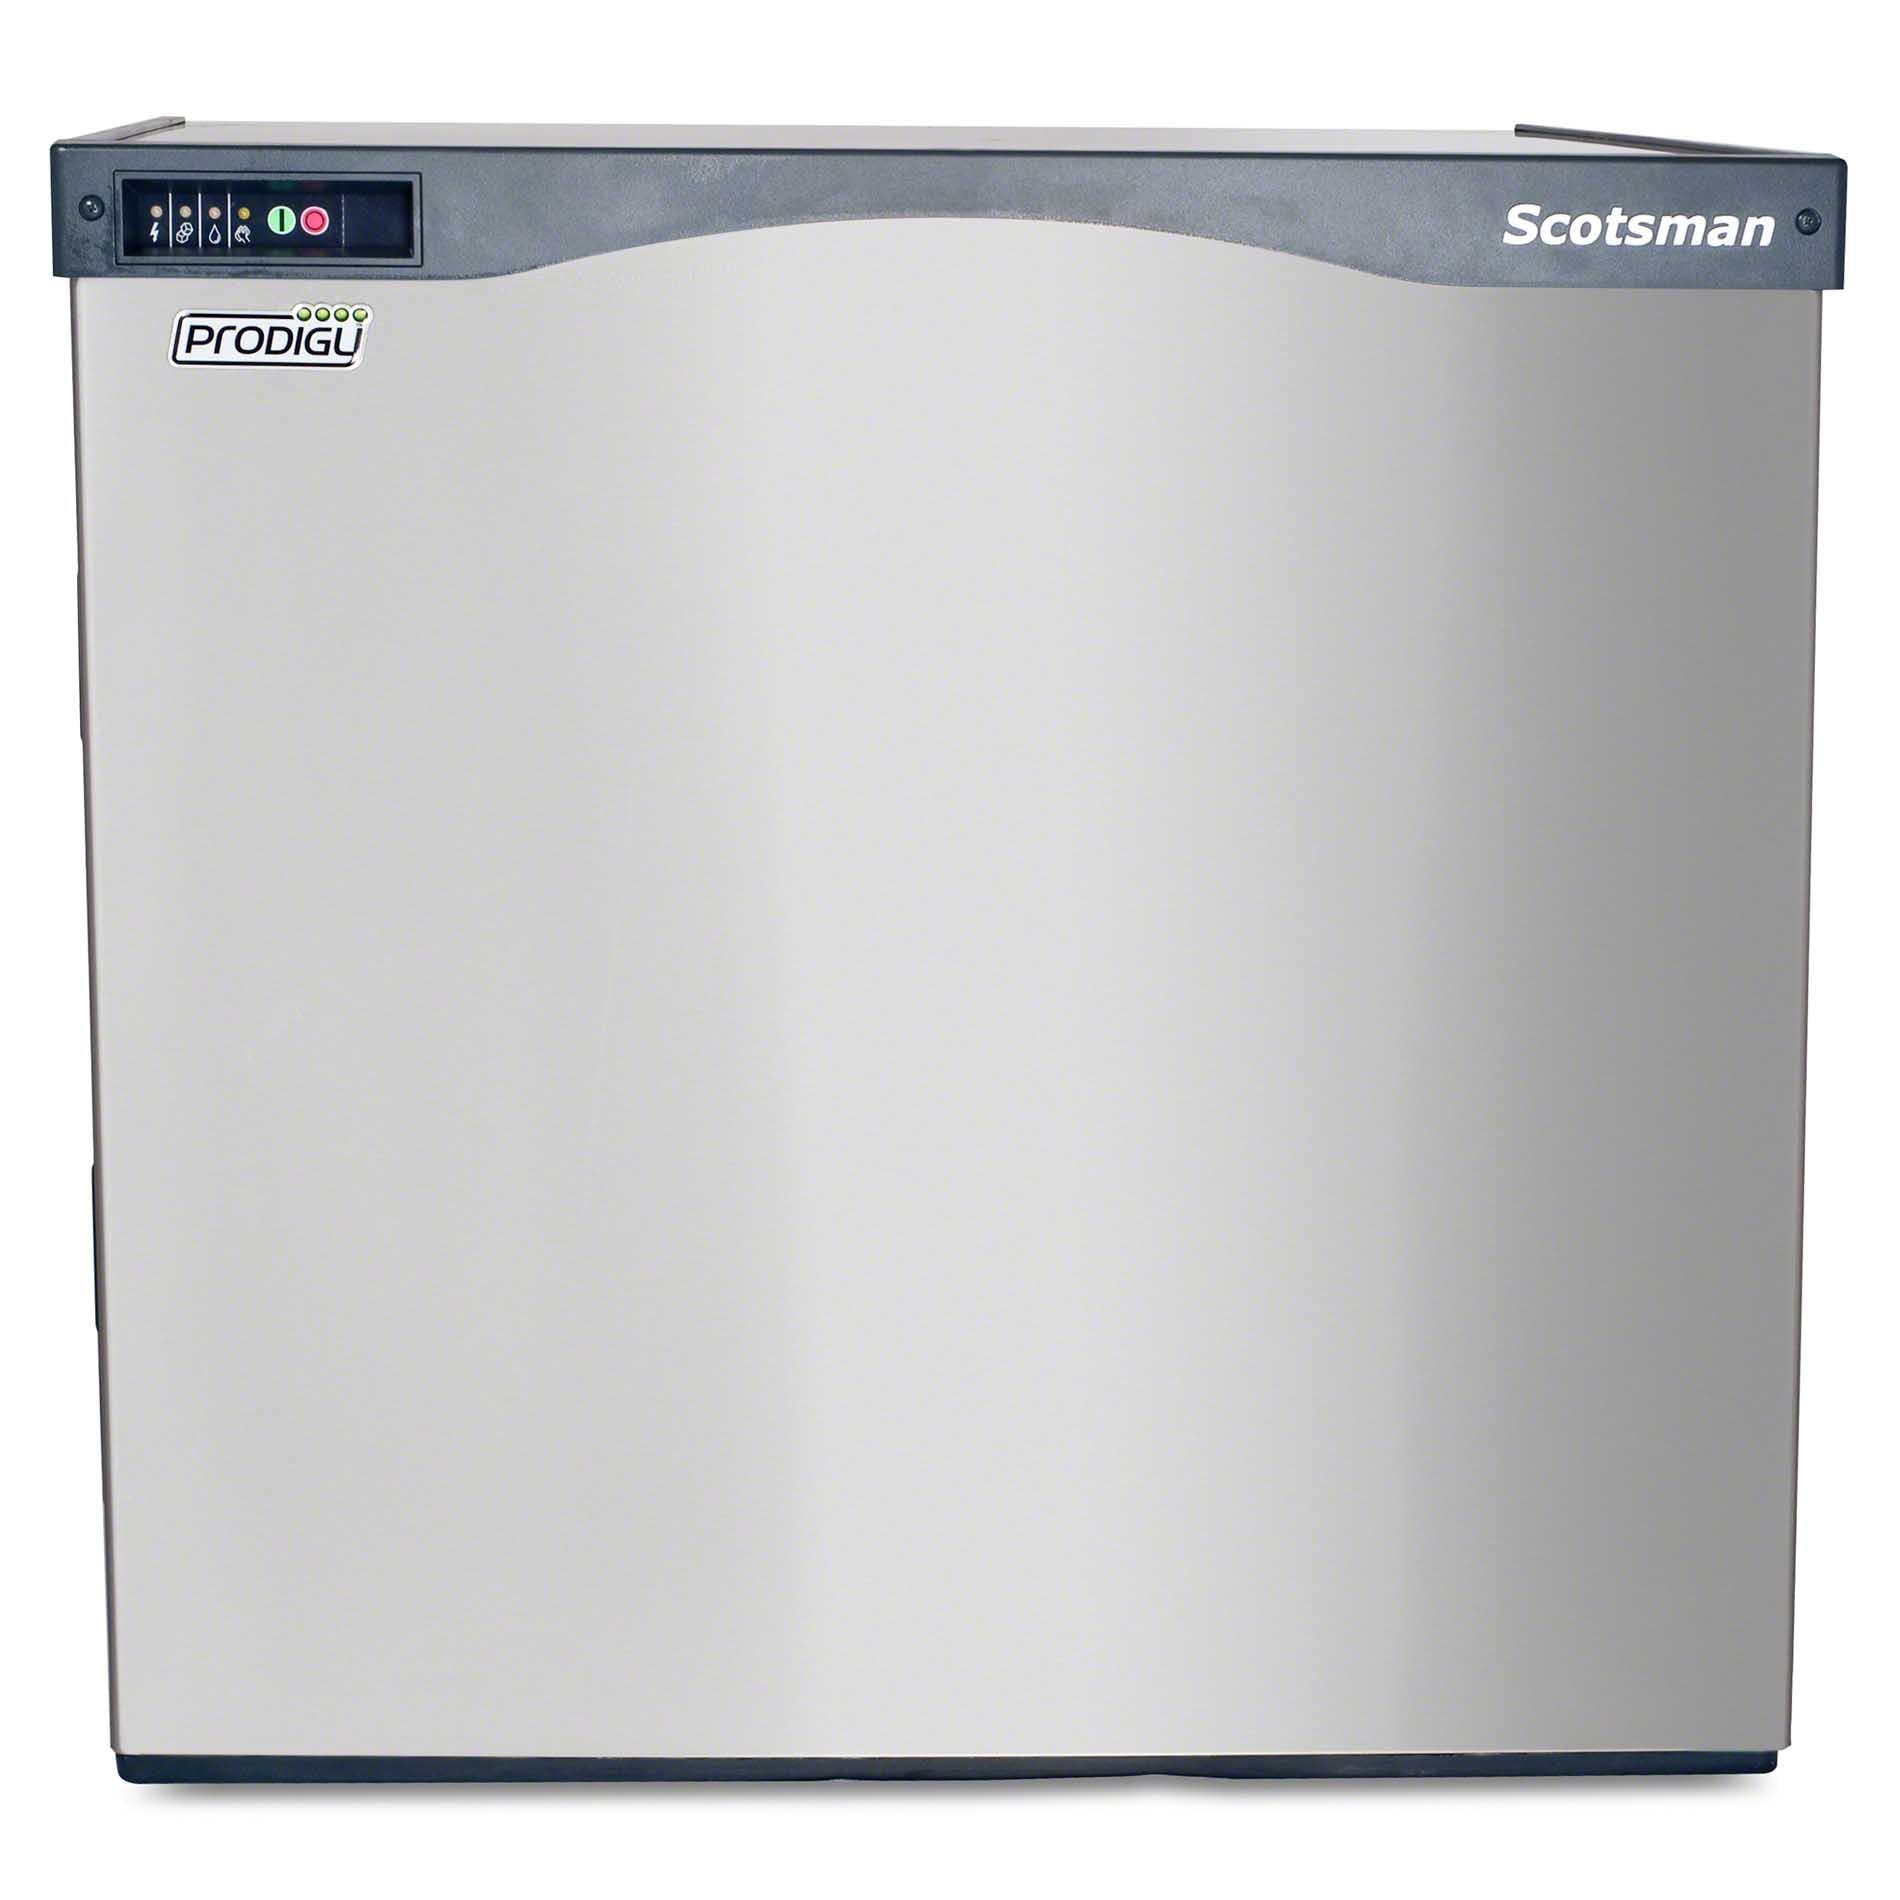 Scotsman - C0830SR-32A 870 lb Half Size Cube Ice Machine - Prodigy Series Ice machine sold by Food Service Warehouse